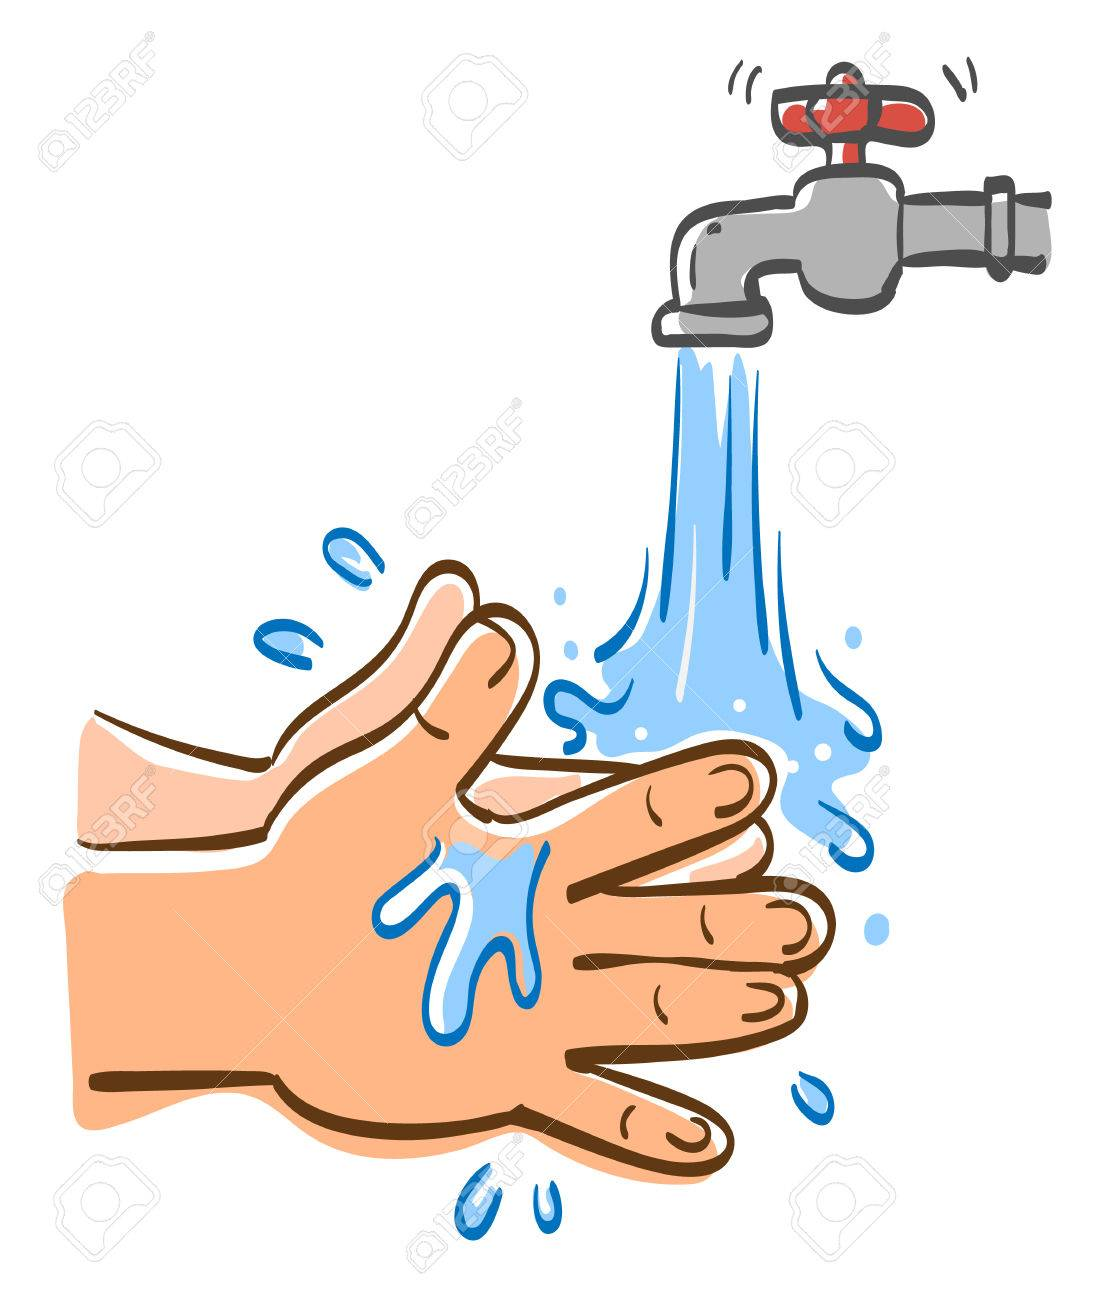 Cleaning hands with water, Vector graphic illustration. - 75568593